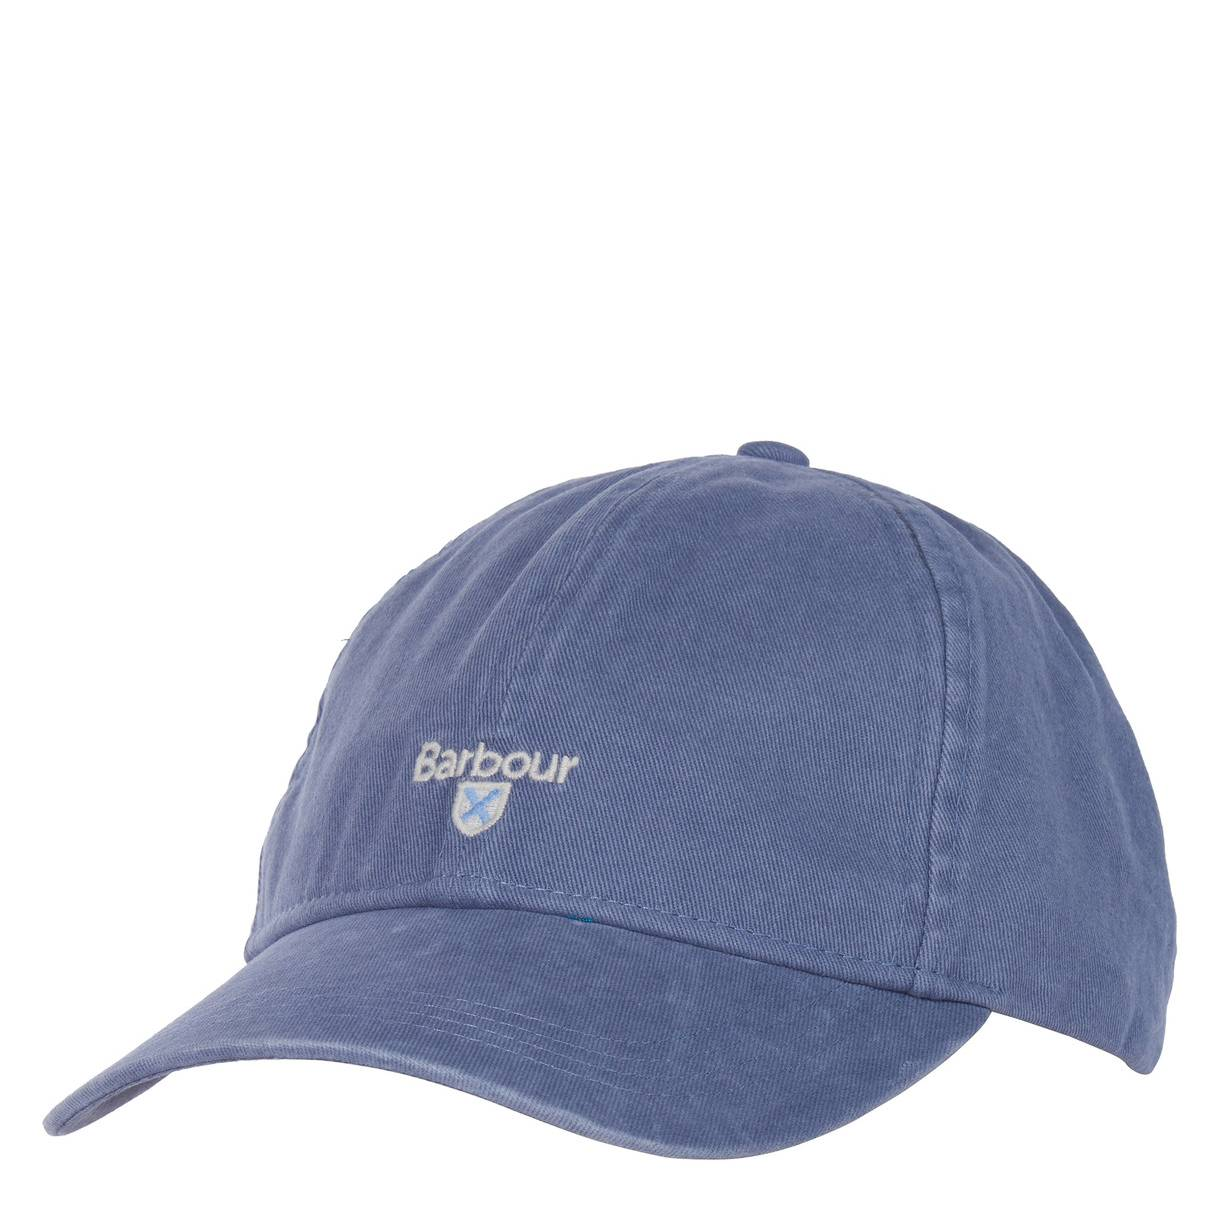 Barbour Cascade Sports Cap - Washed Blue